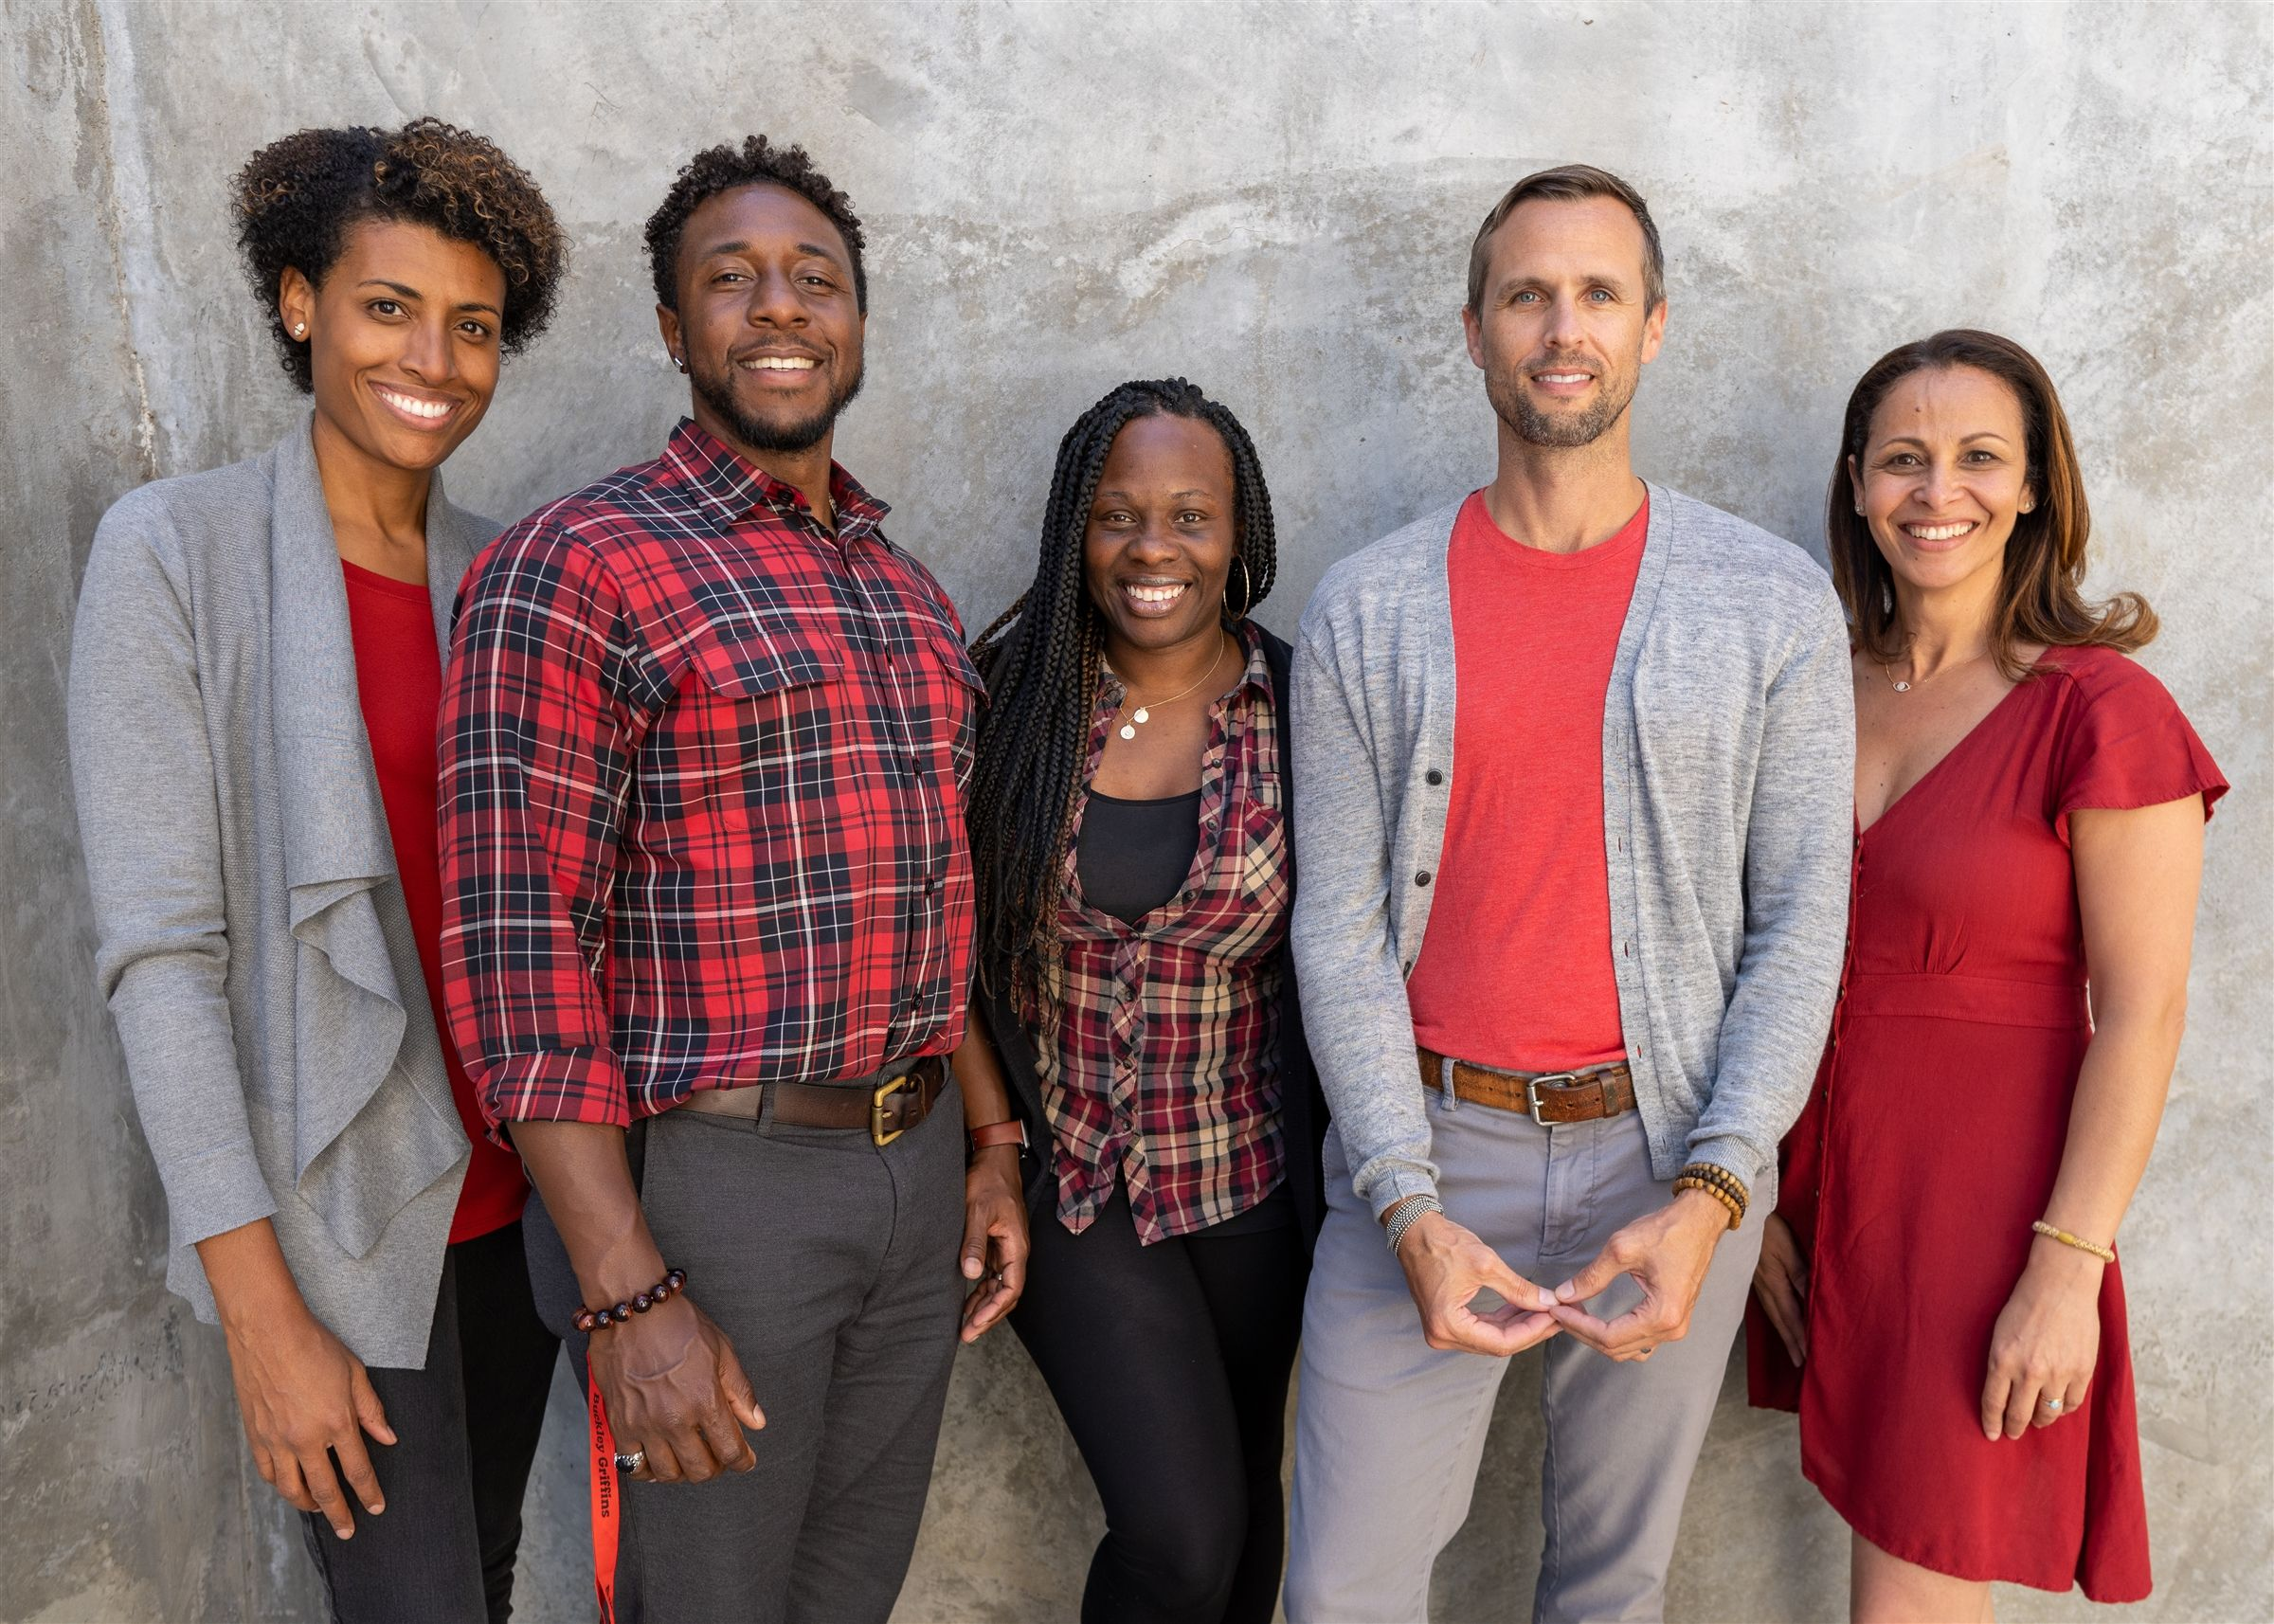 From left to right: Cydney Junius, Anthony Gaskins, Ralinda Watts, Chuck Neddermeyer, and Sabine Abadou